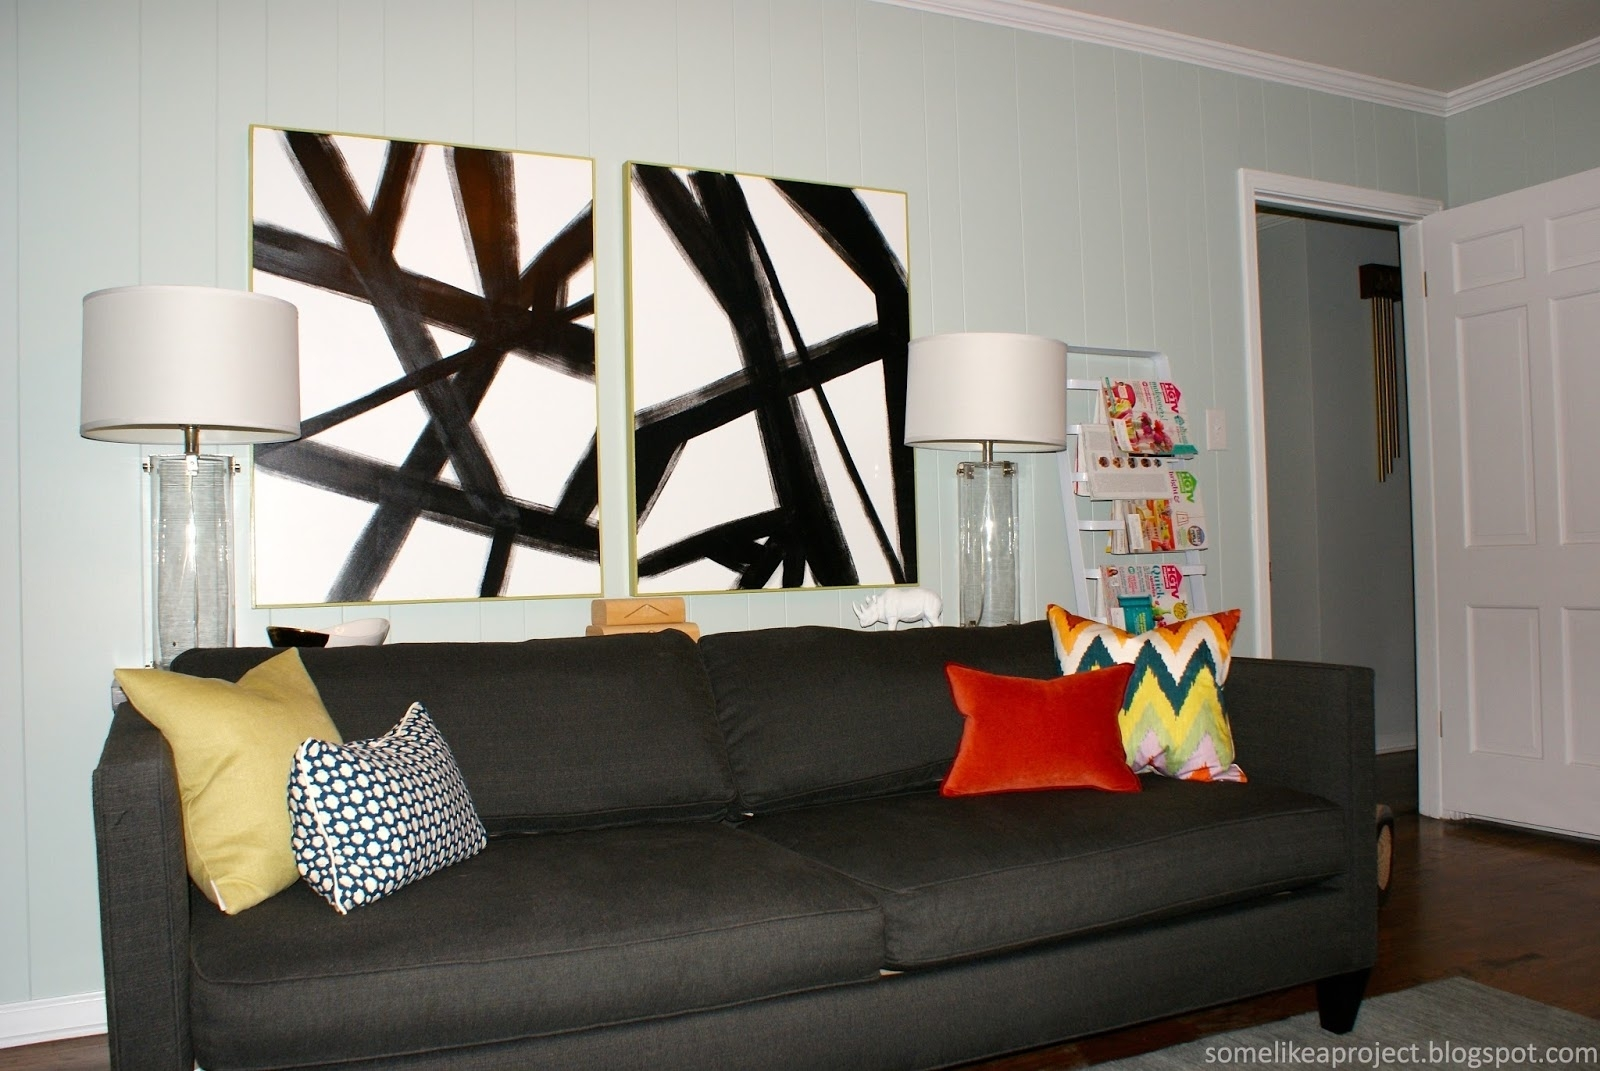 Some Like A Project: Large Diy Black & White Abstract Art In Current West Elm Abstract Wall Art (View 18 of 20)